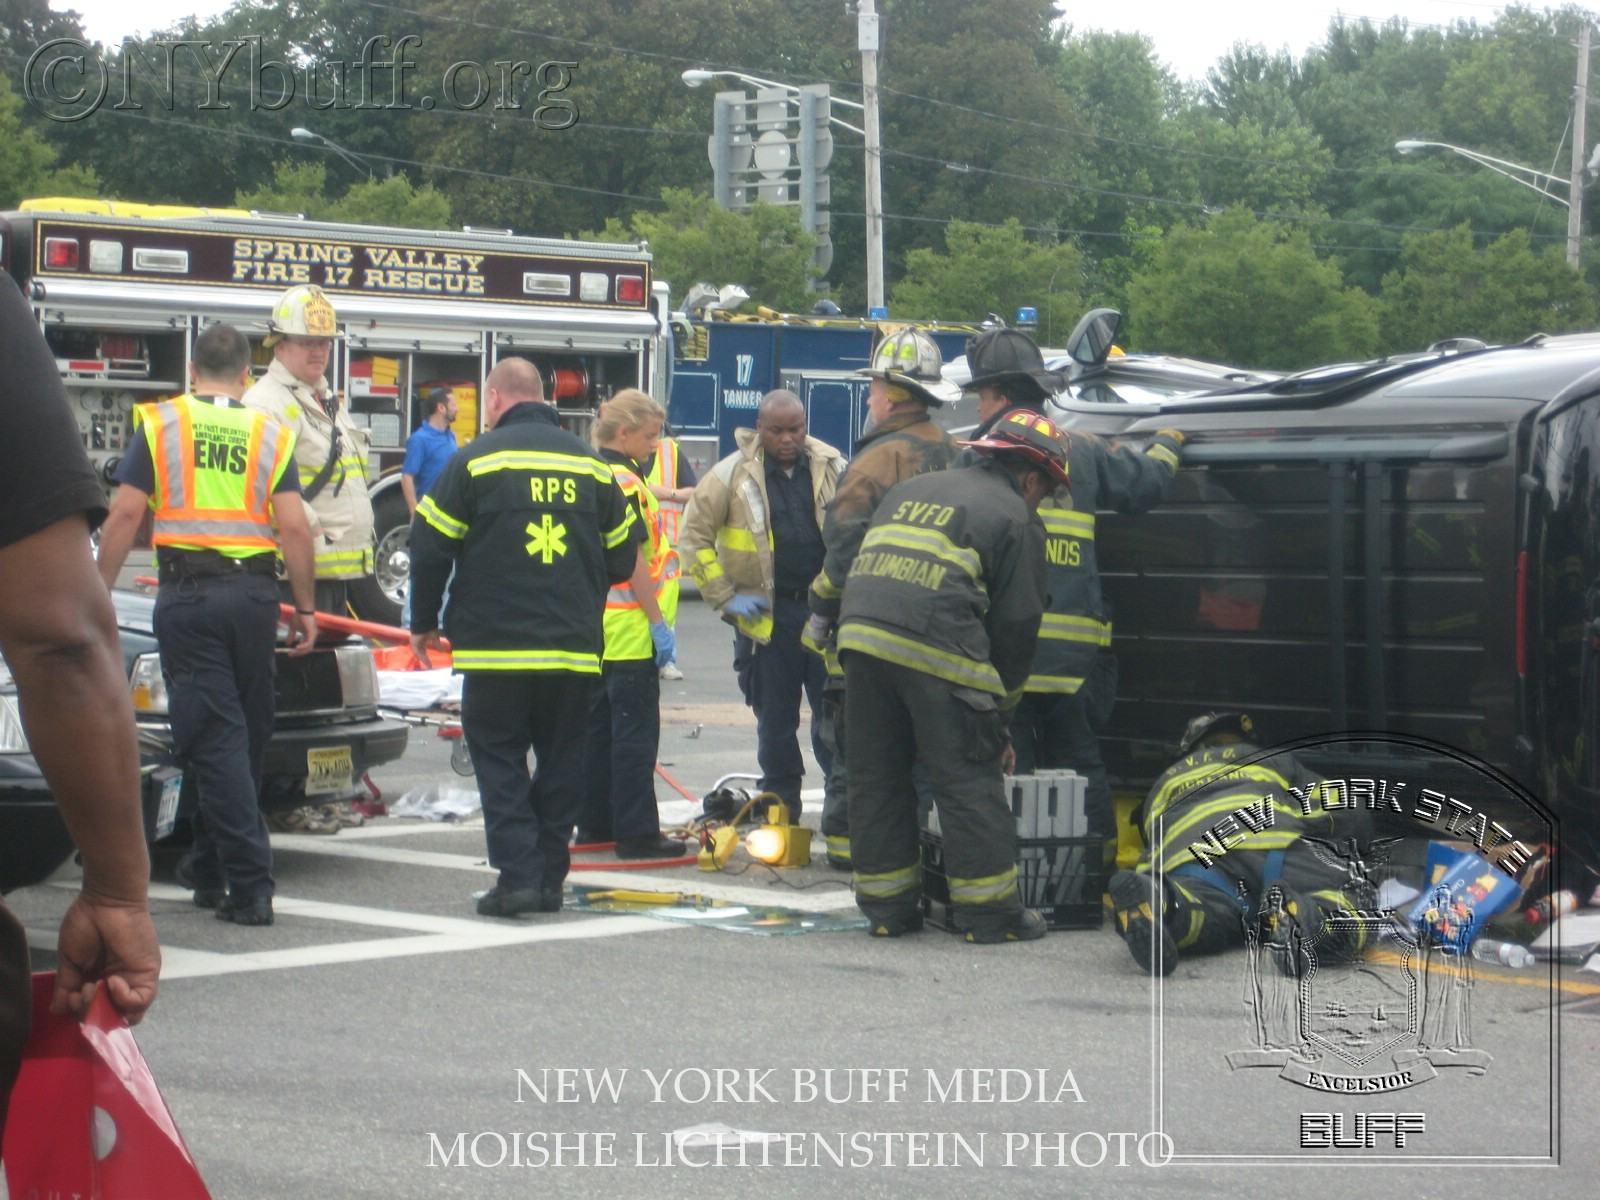 New york buff media august 2011 for Department of motor vehicles west haverstraw ny